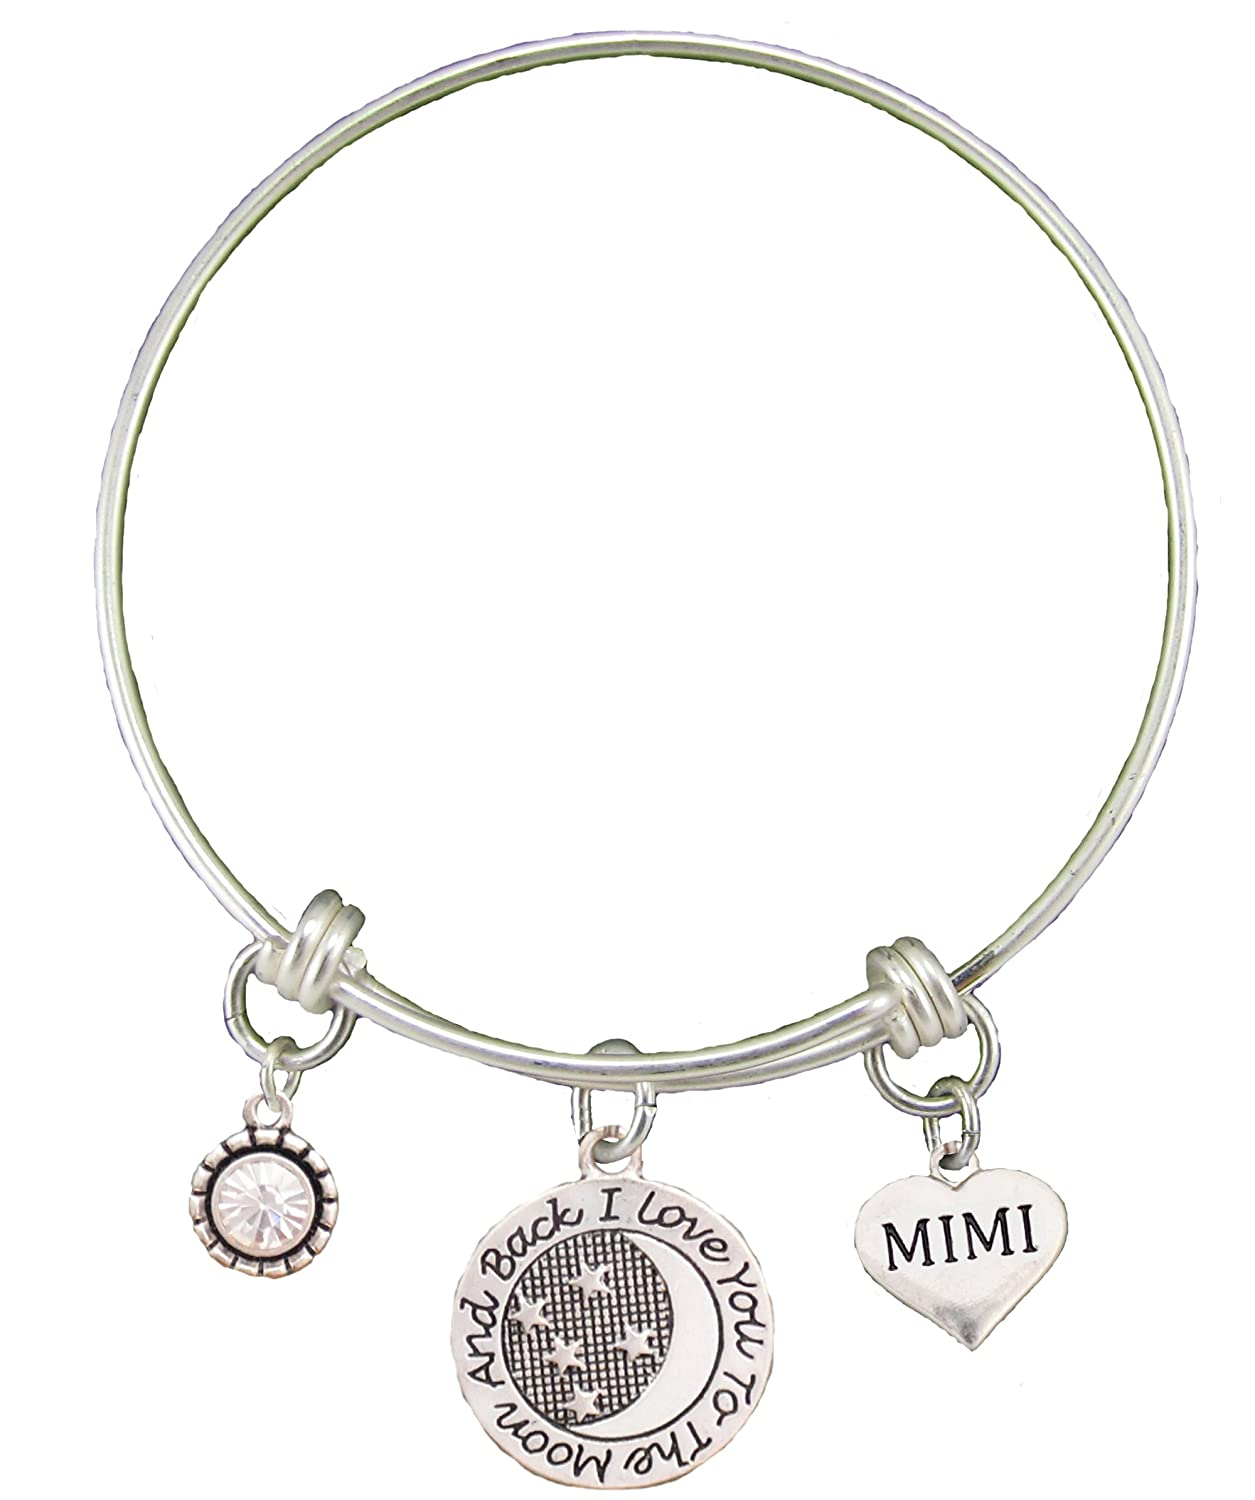 Mimi Love You To The Moon Silver Wire Adjustable Bracelet Heart